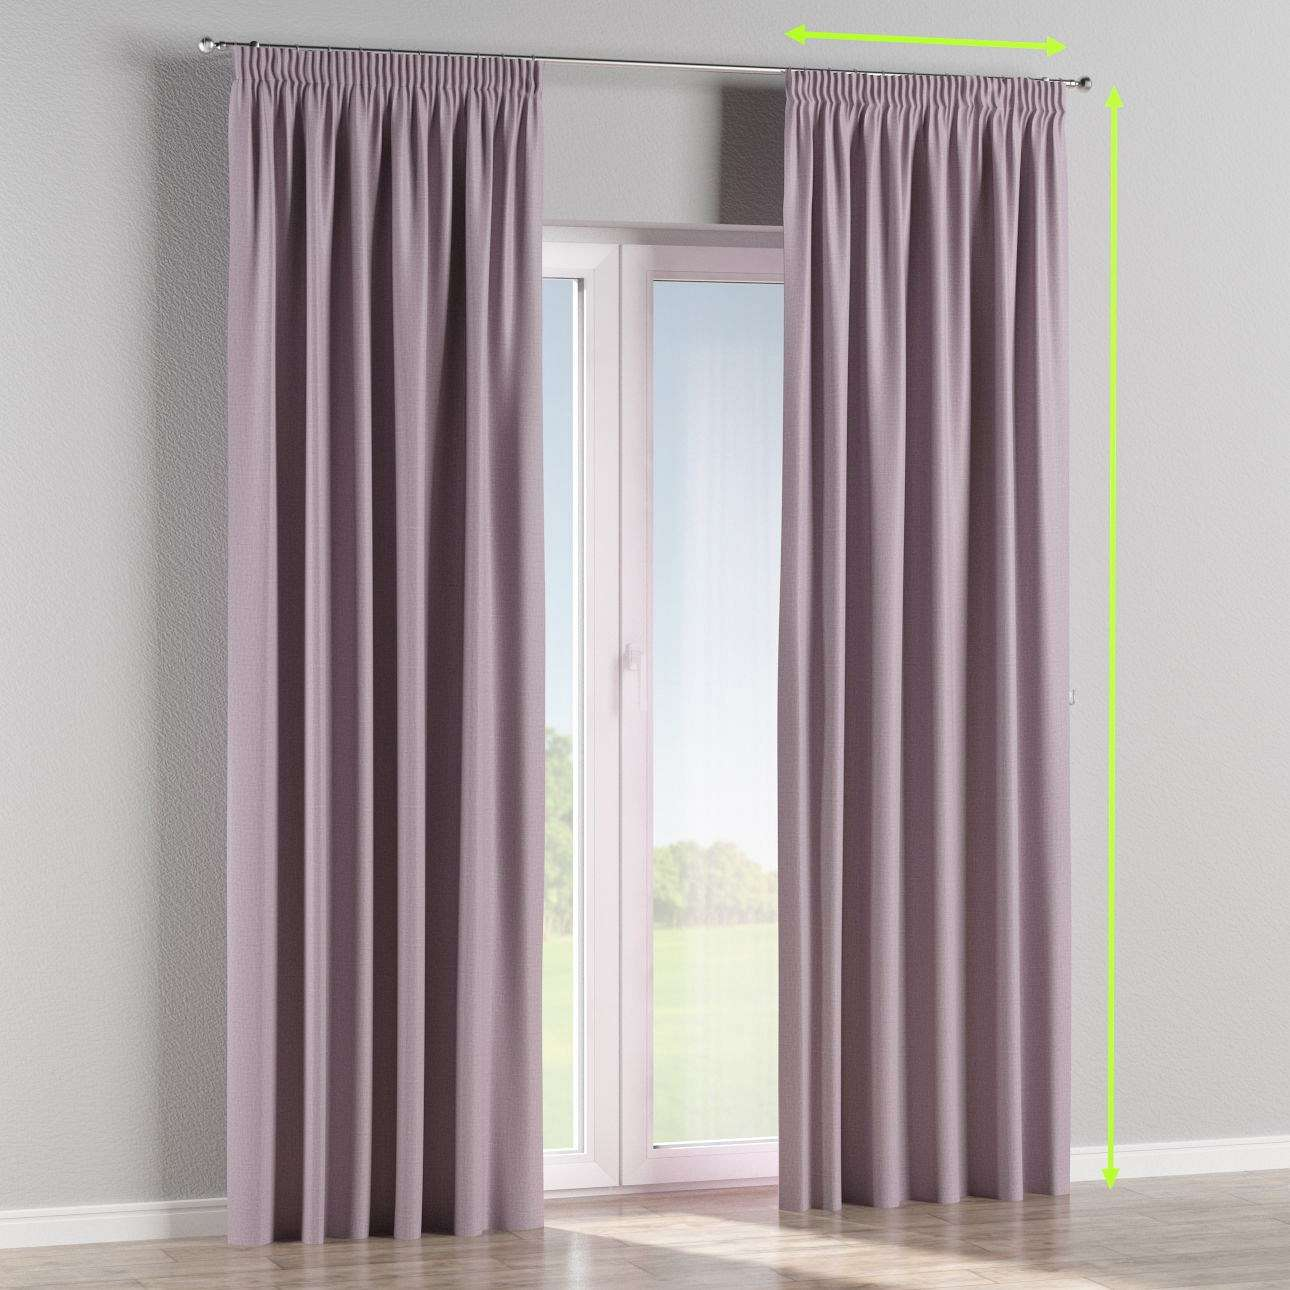 Pencil pleat curtain in collection Blackout, fabric: 269-60